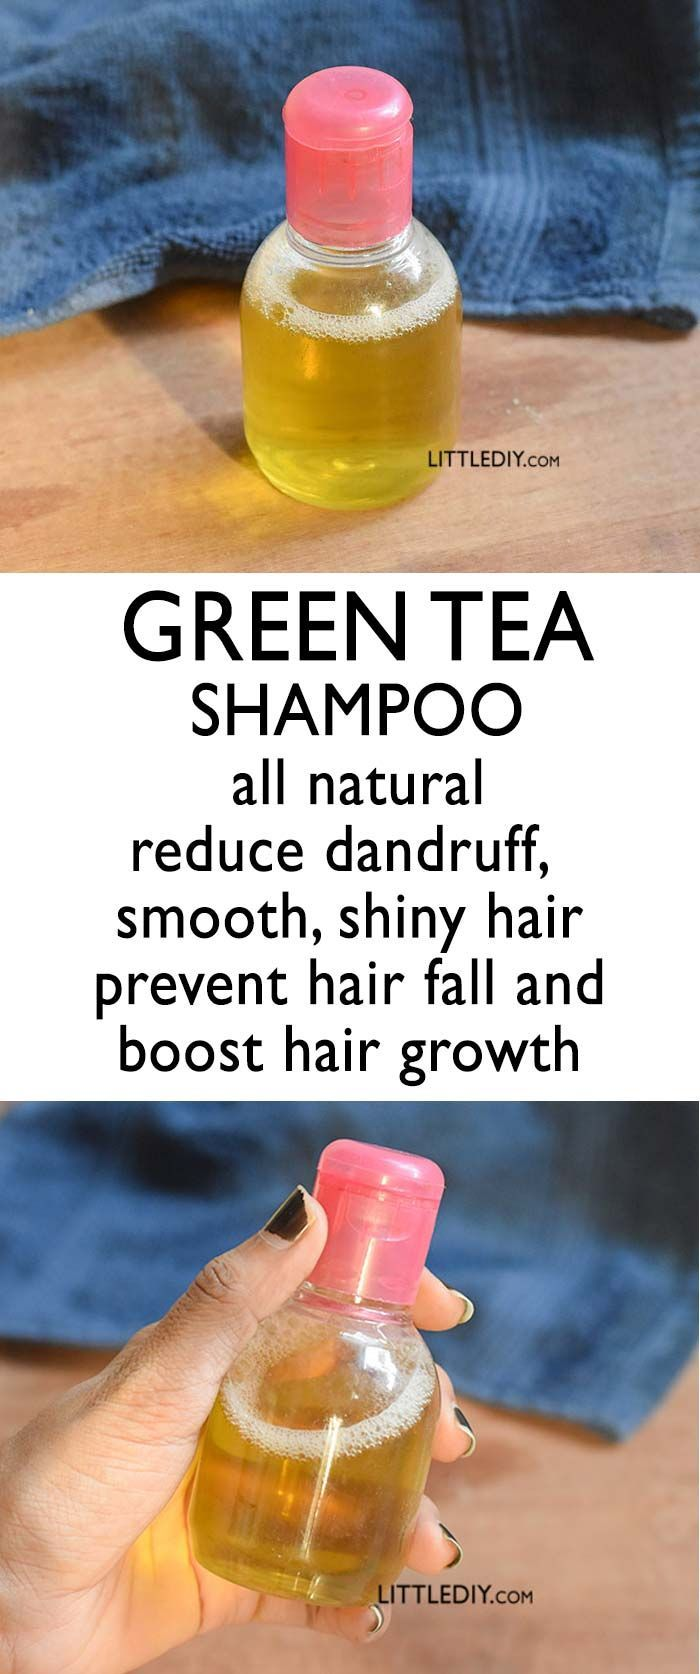 For a healthy hair growth, it is best to use a shampoo that is free of harsh che...